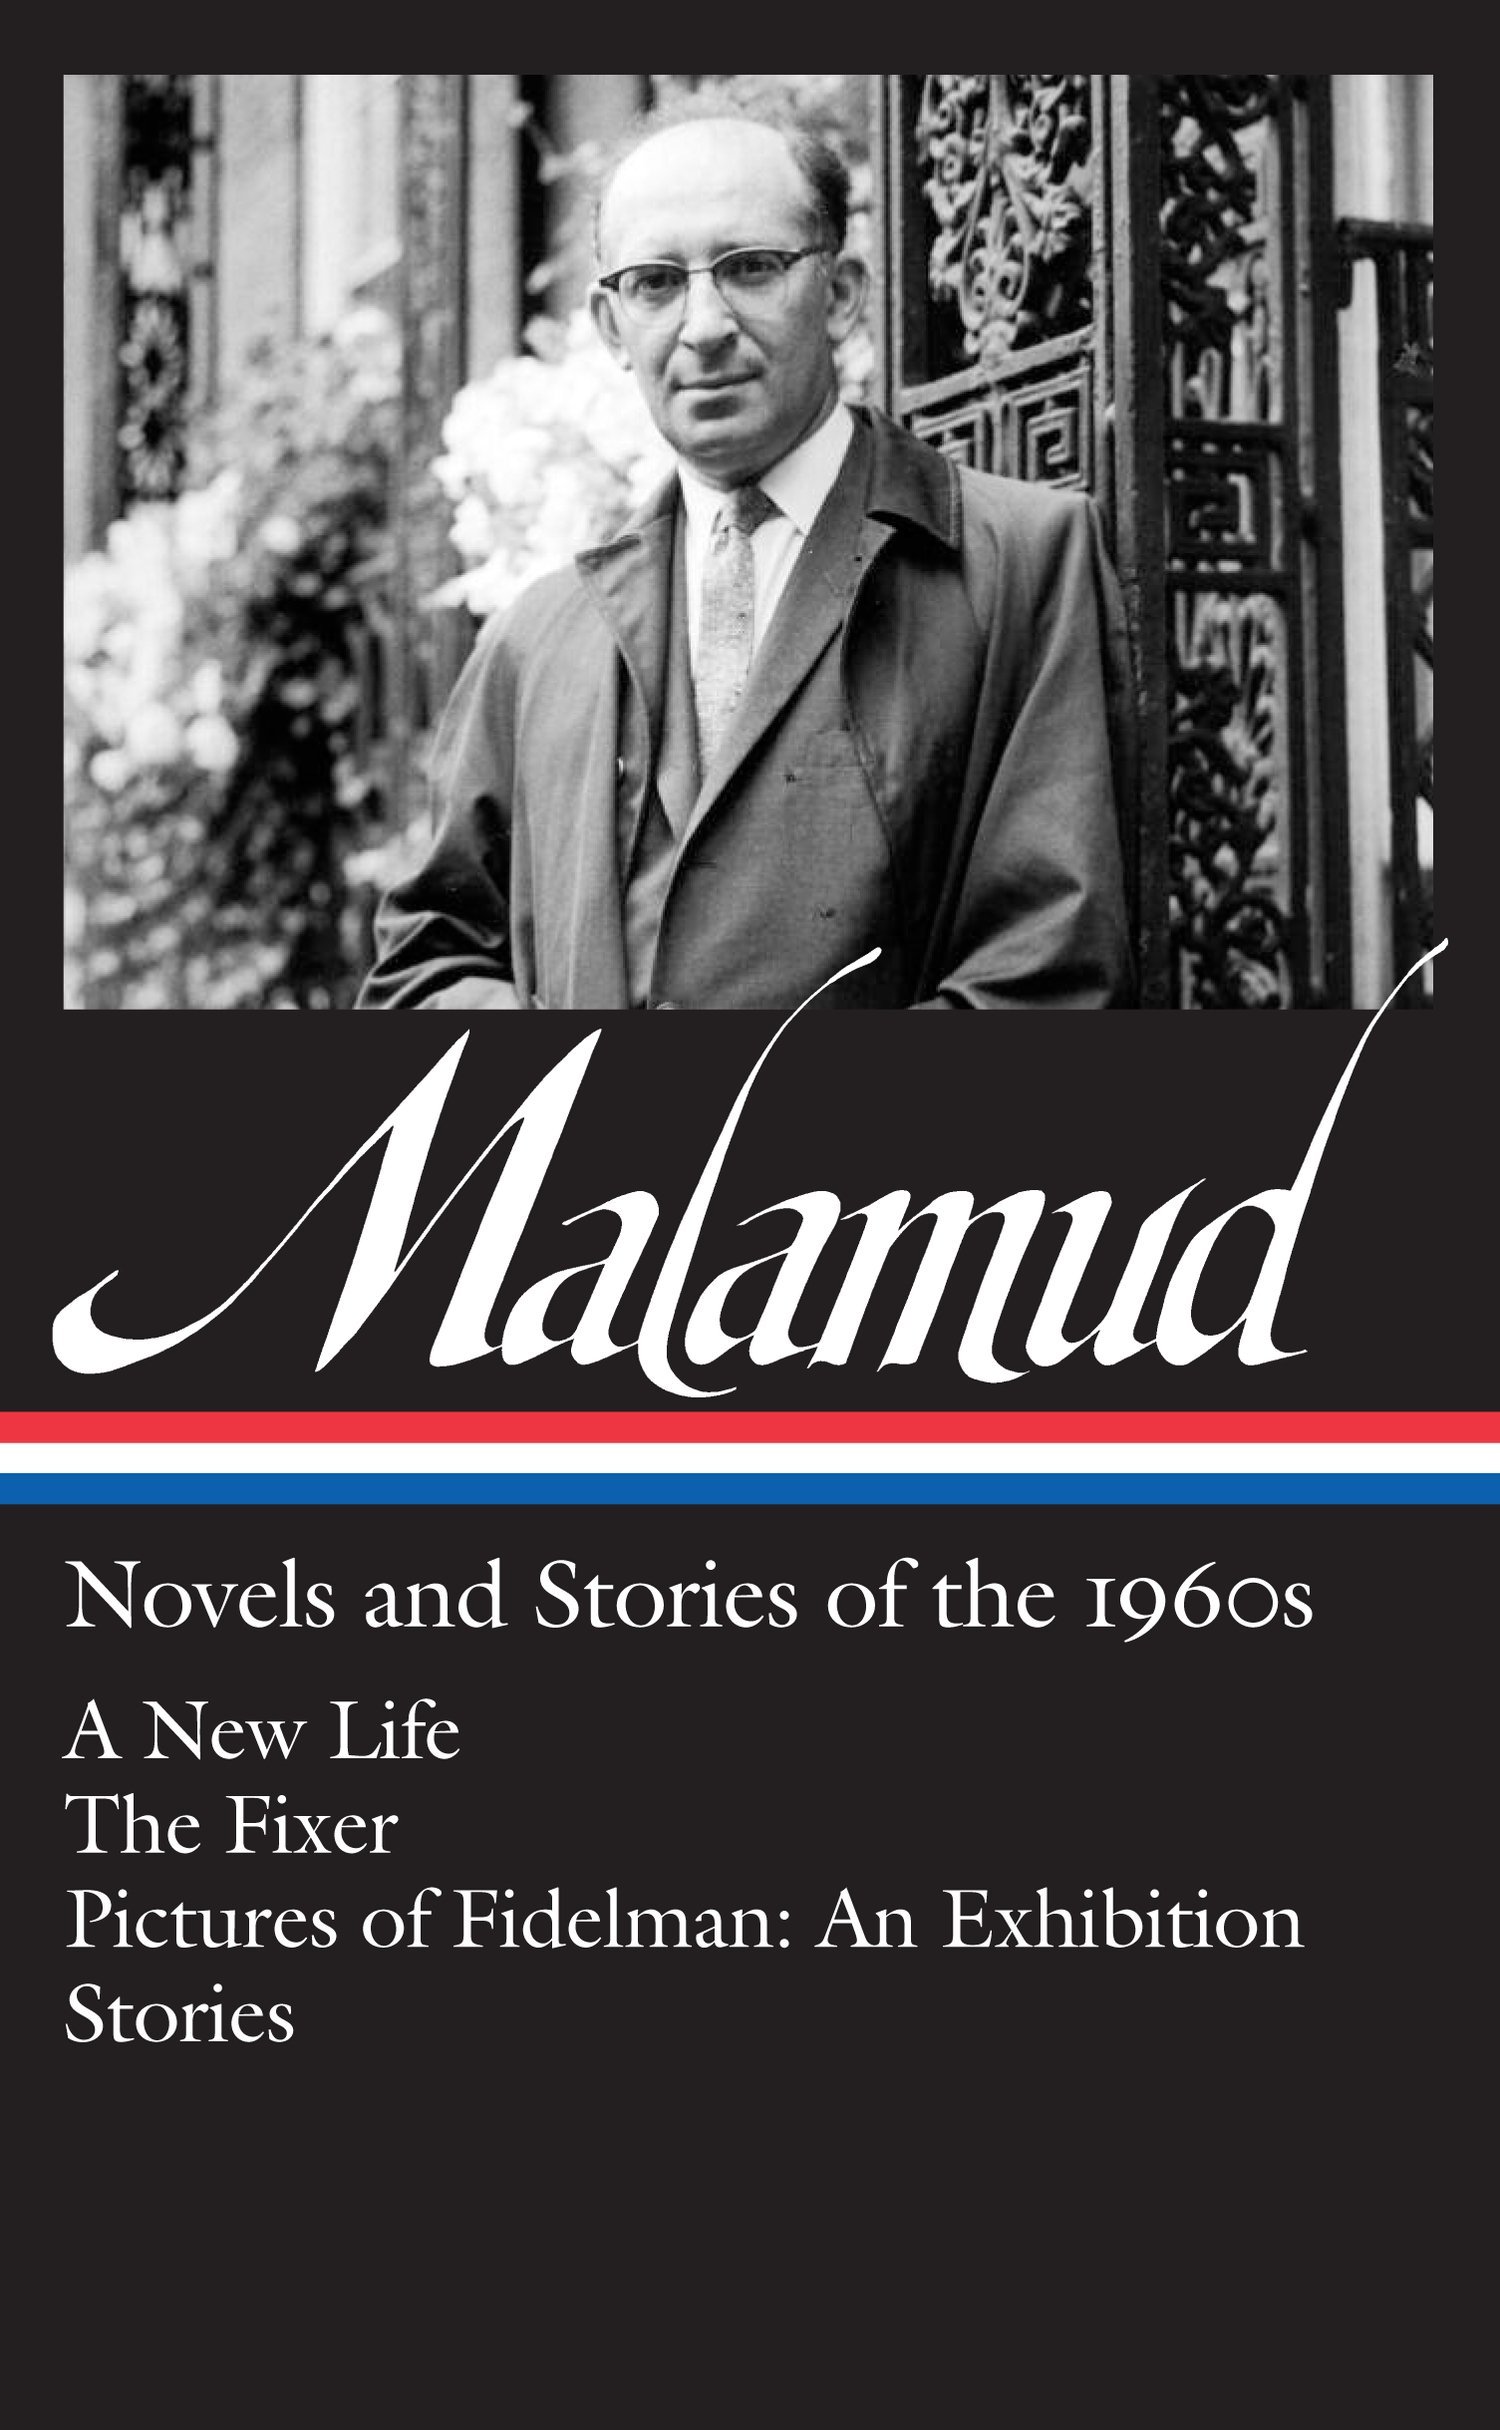 a biography of bernard malamud an american author Oxford university press has published a new biography of jewish american writer bernard malamud it is the first major biography of malamud to date the book, written by liverpool university professor of english philip davis, is titled bernard malamud: a writer's life the harry ransom center .